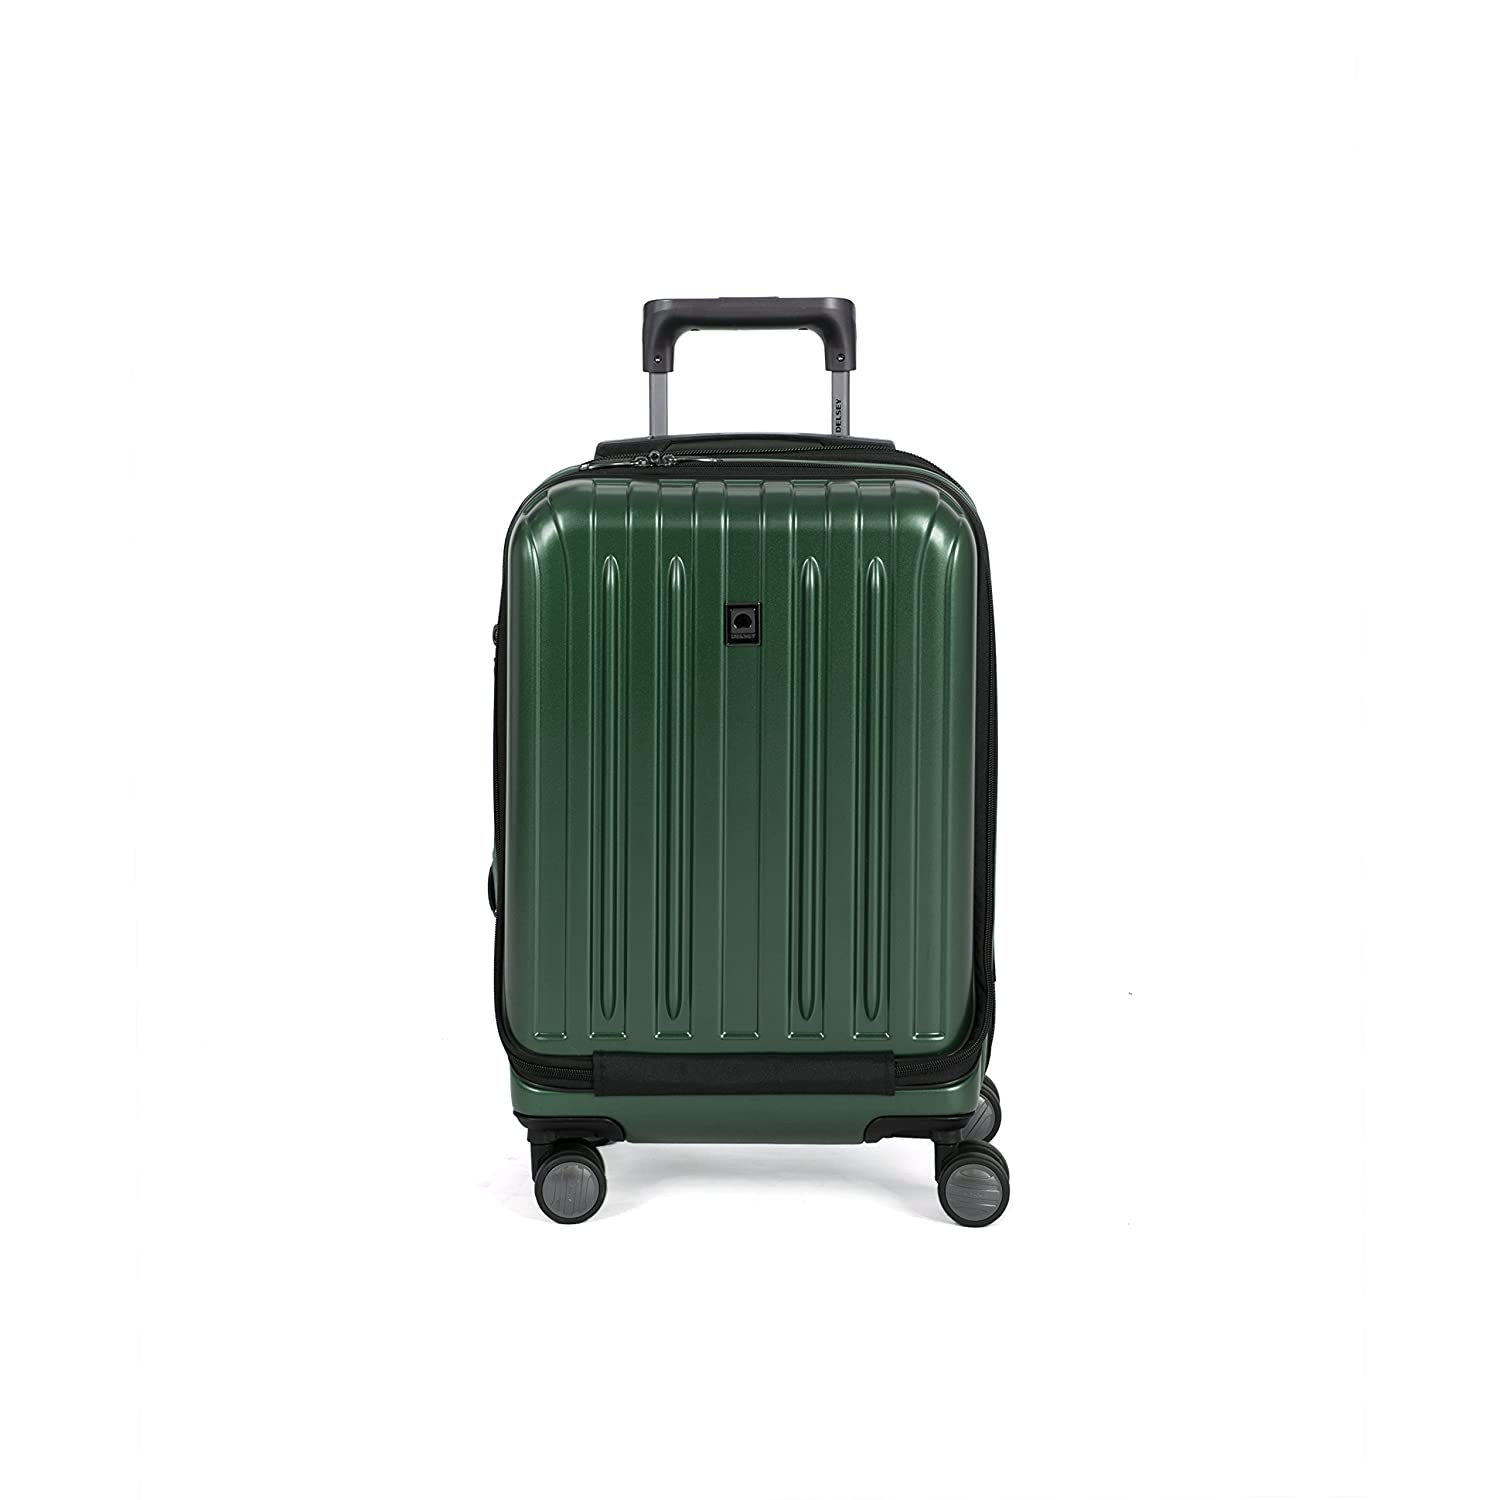 Delsey Helium Titanium 19 International Carry-On Expandable Spinner Luggage, Silver Delsey Luggage Inc. 00207180111